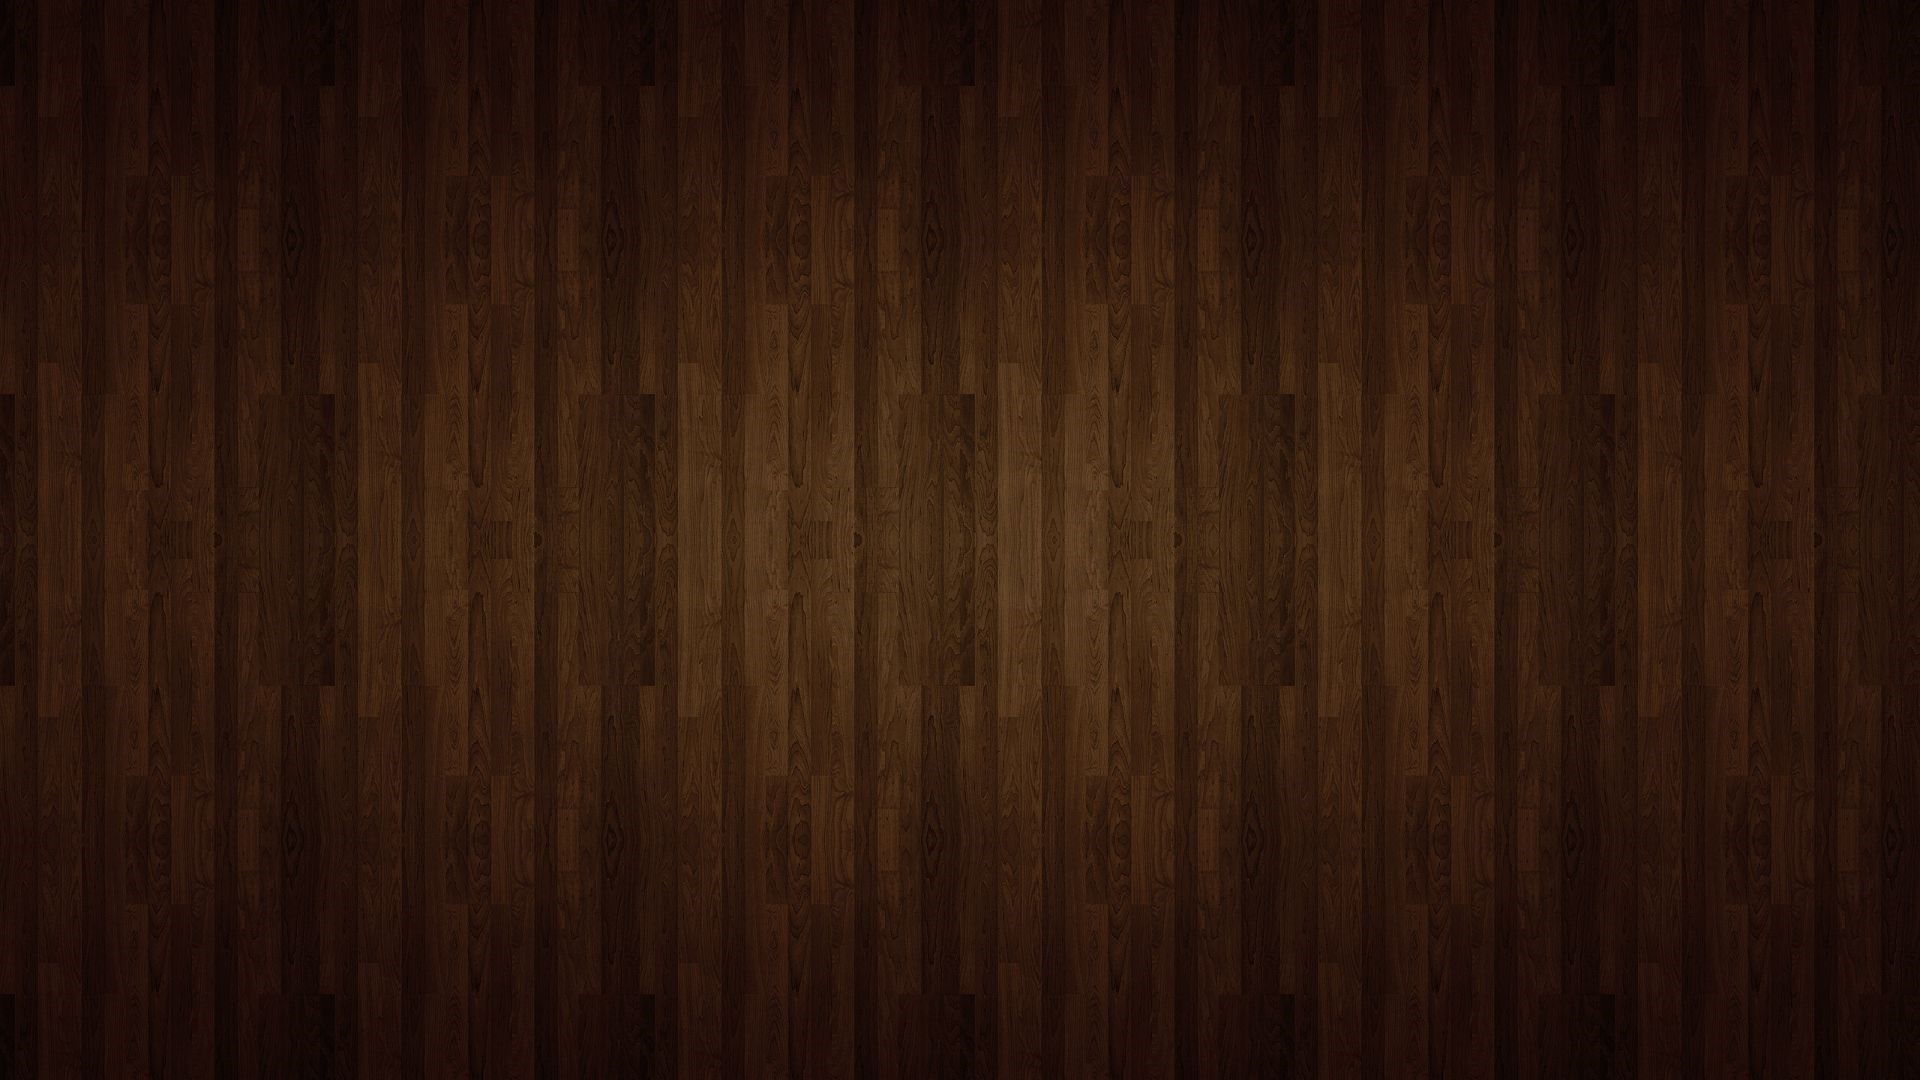 Wood Grain Picture